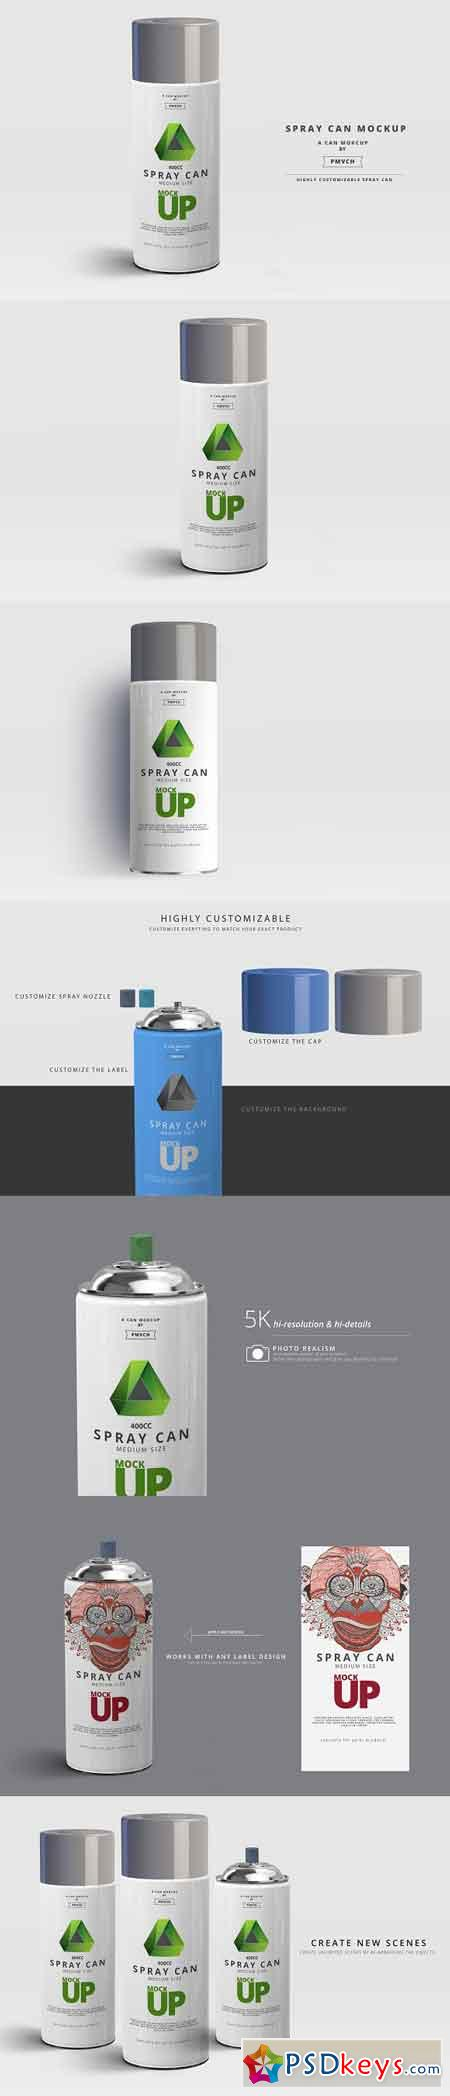 Spray Can Mockup - Medium Size 2961896